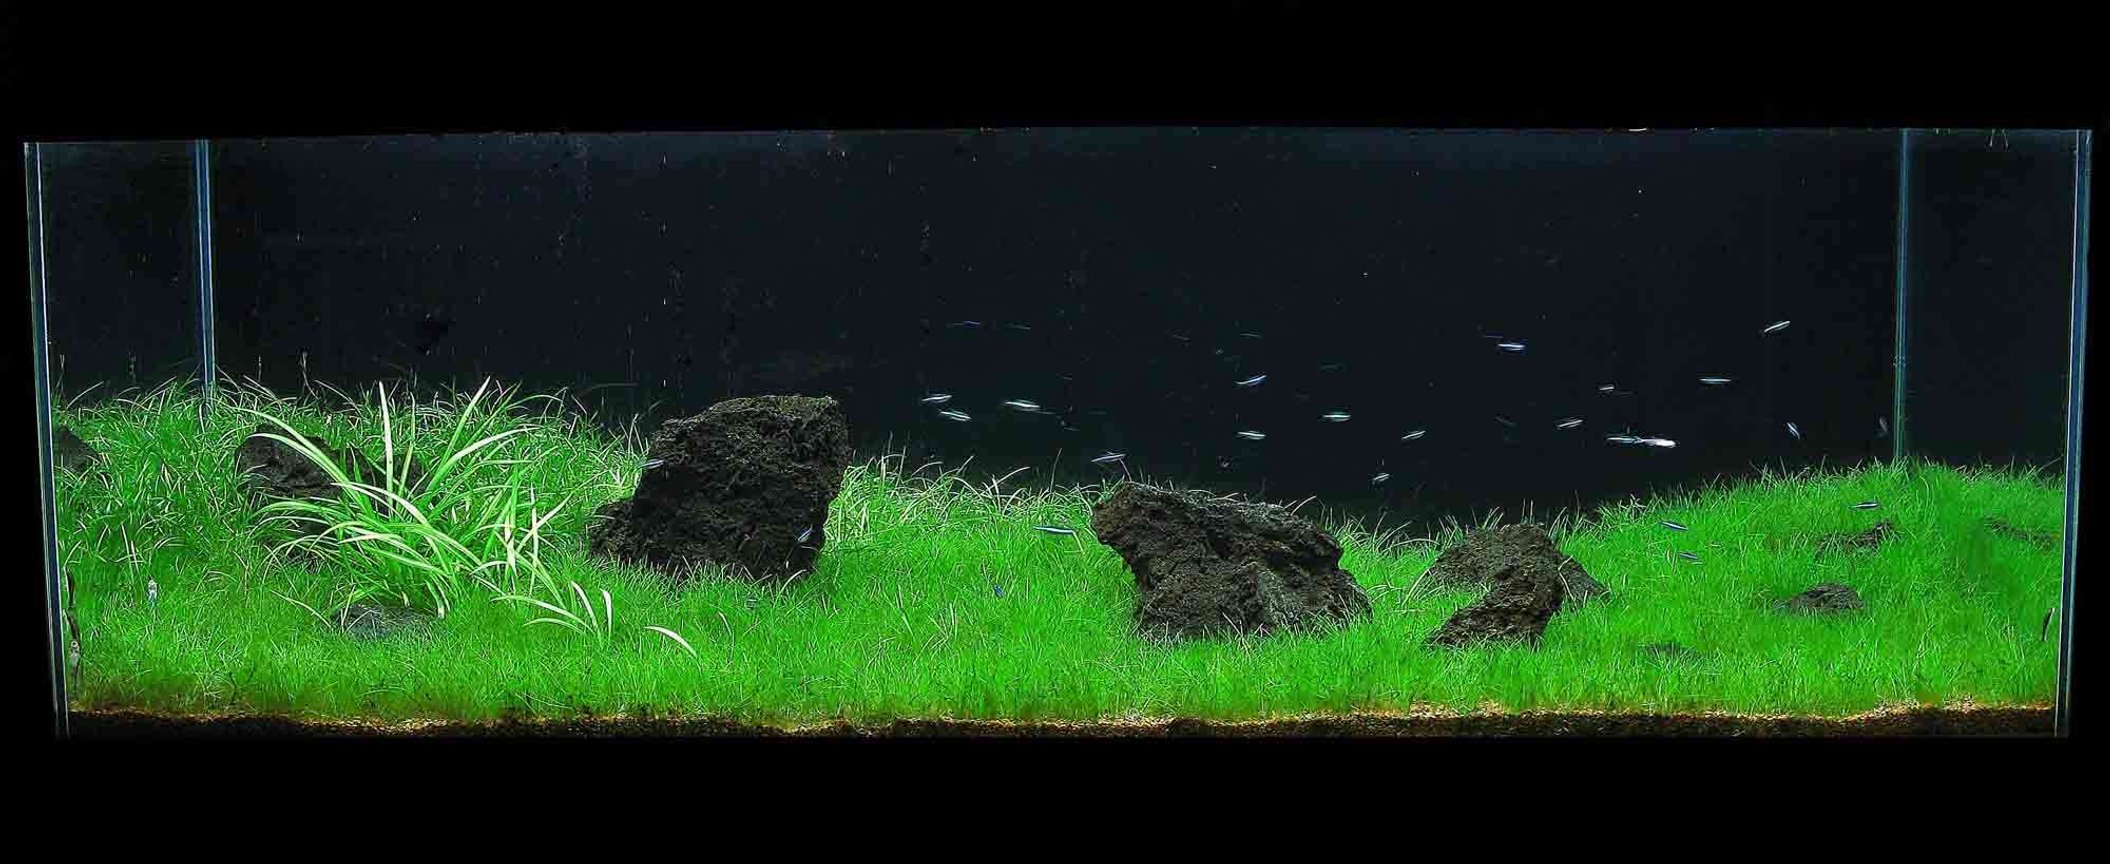 60 gallons planted tank (mostly live plants and fish) - 60g front view